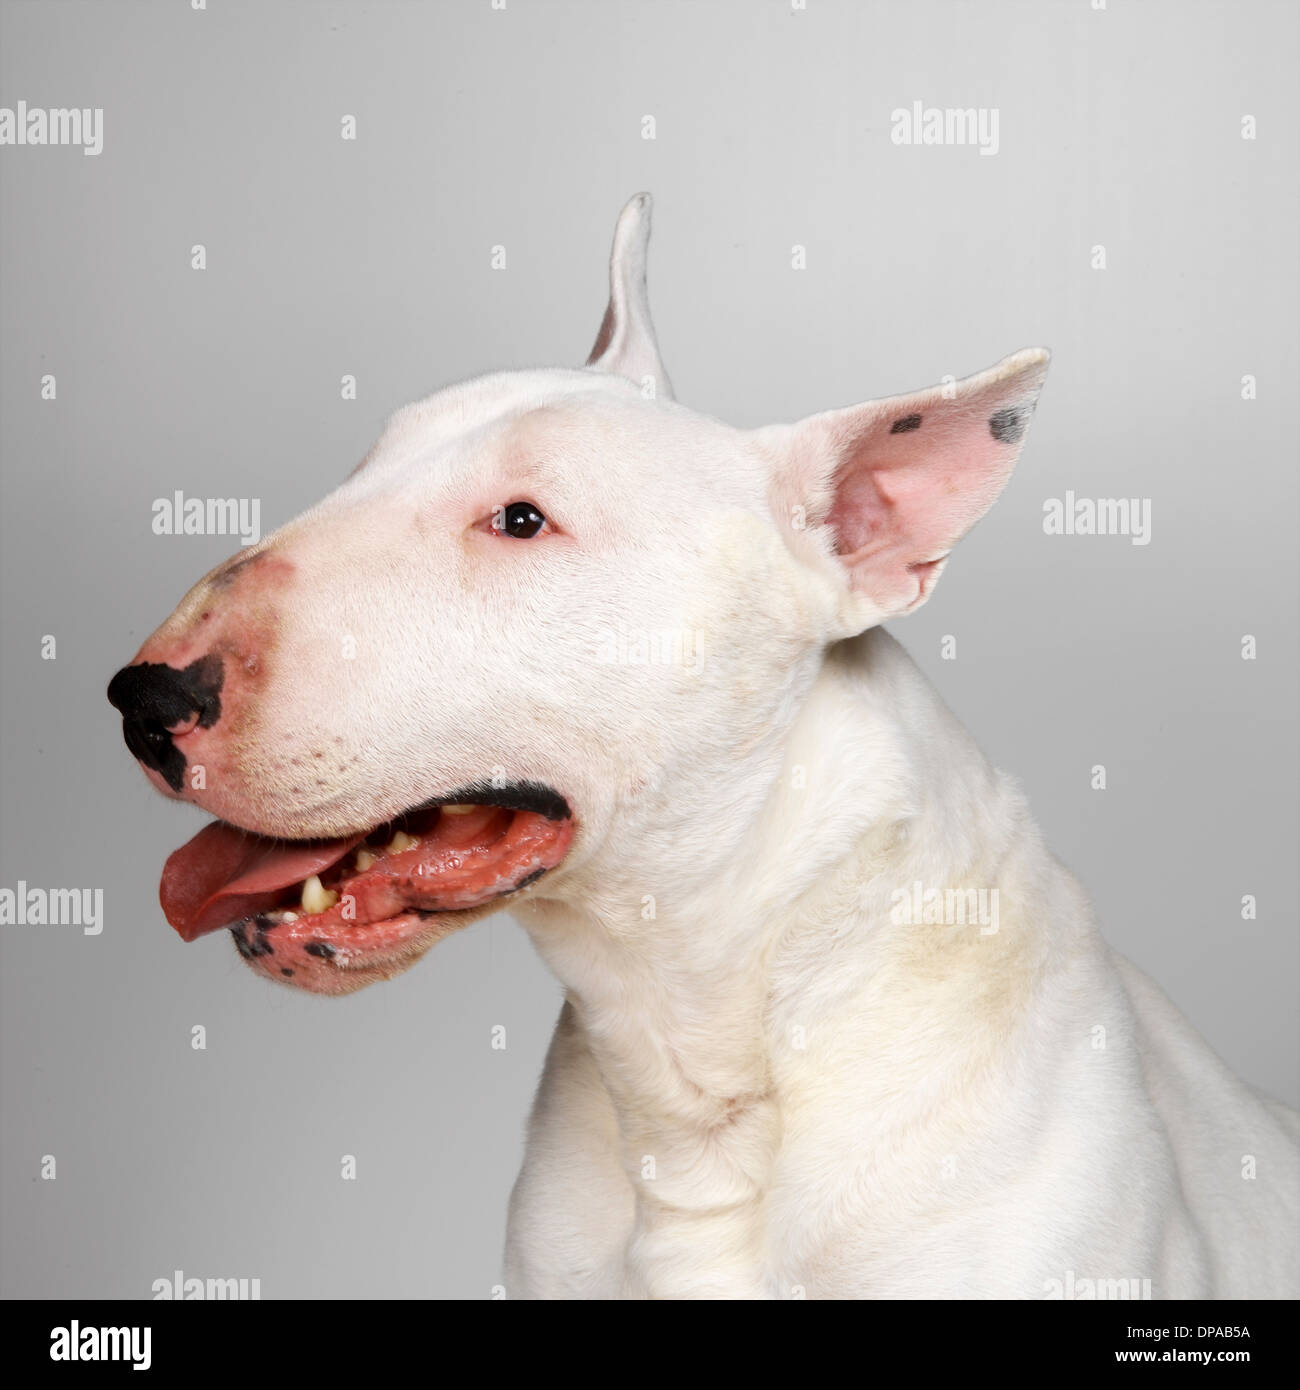 English Bull Terrier panting - Stock Image